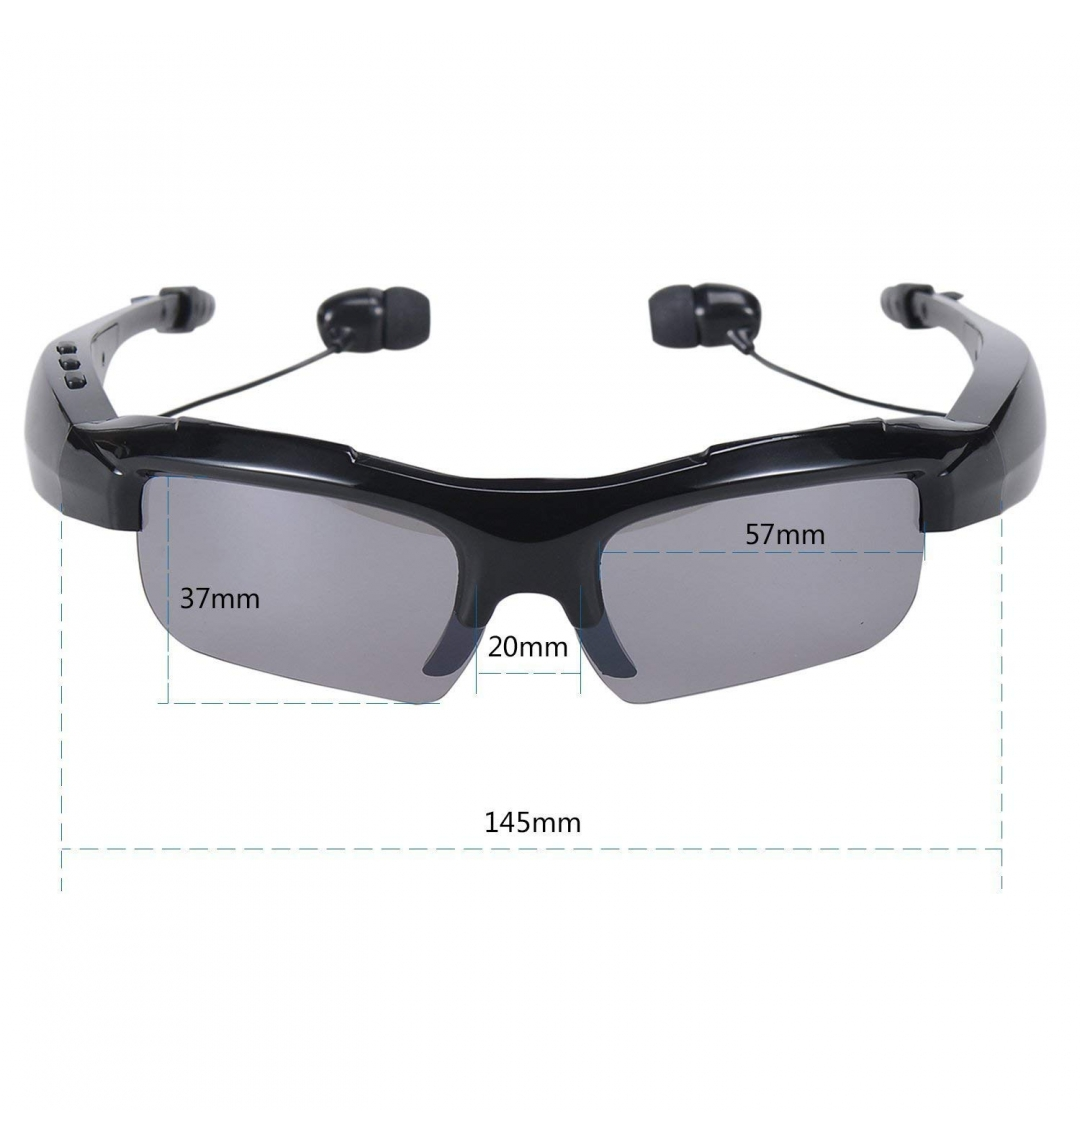 UniZoom Outdoor Glasses Bluetooth Sunglasses Headphones Stereo Wireless Sport Riding Song Call Ear Buds Earphone-Only